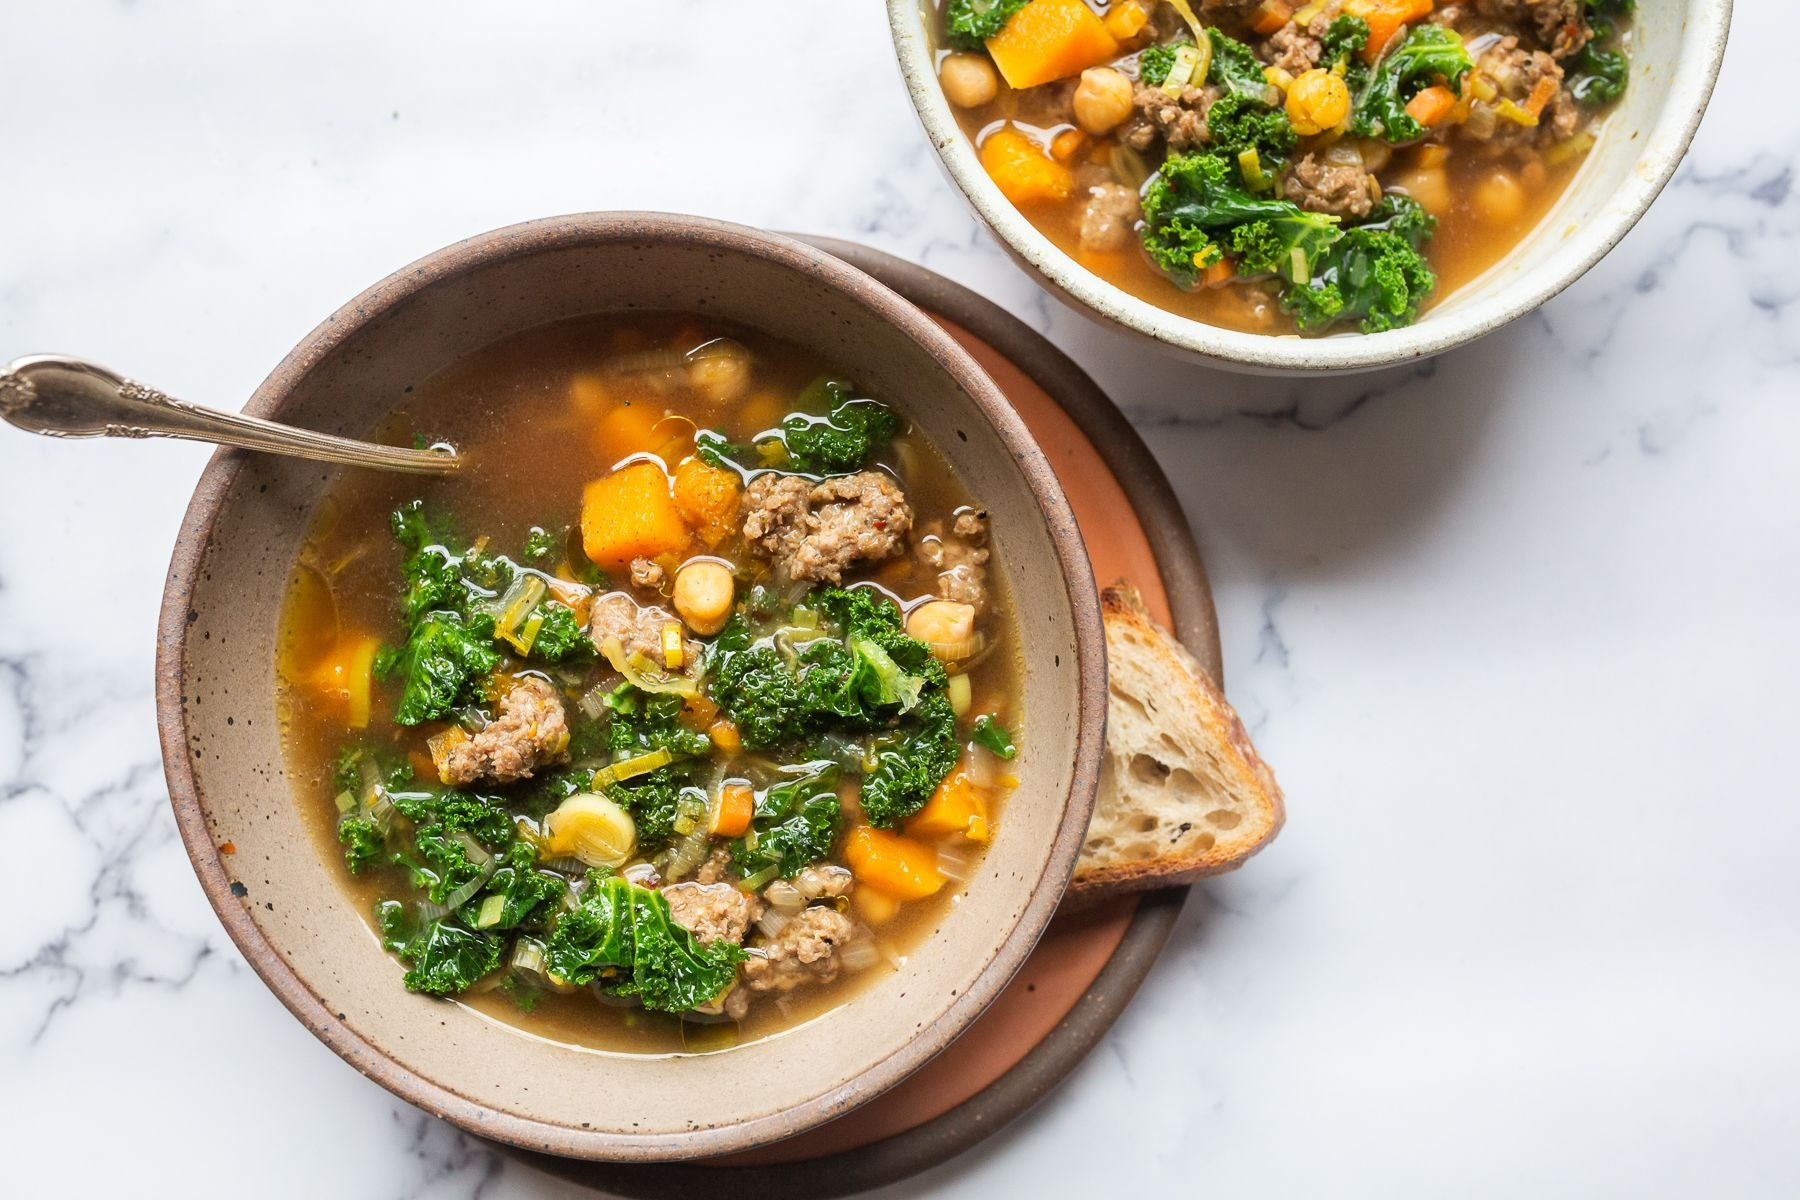 Tuscan Stew with Chickpeas and Squash